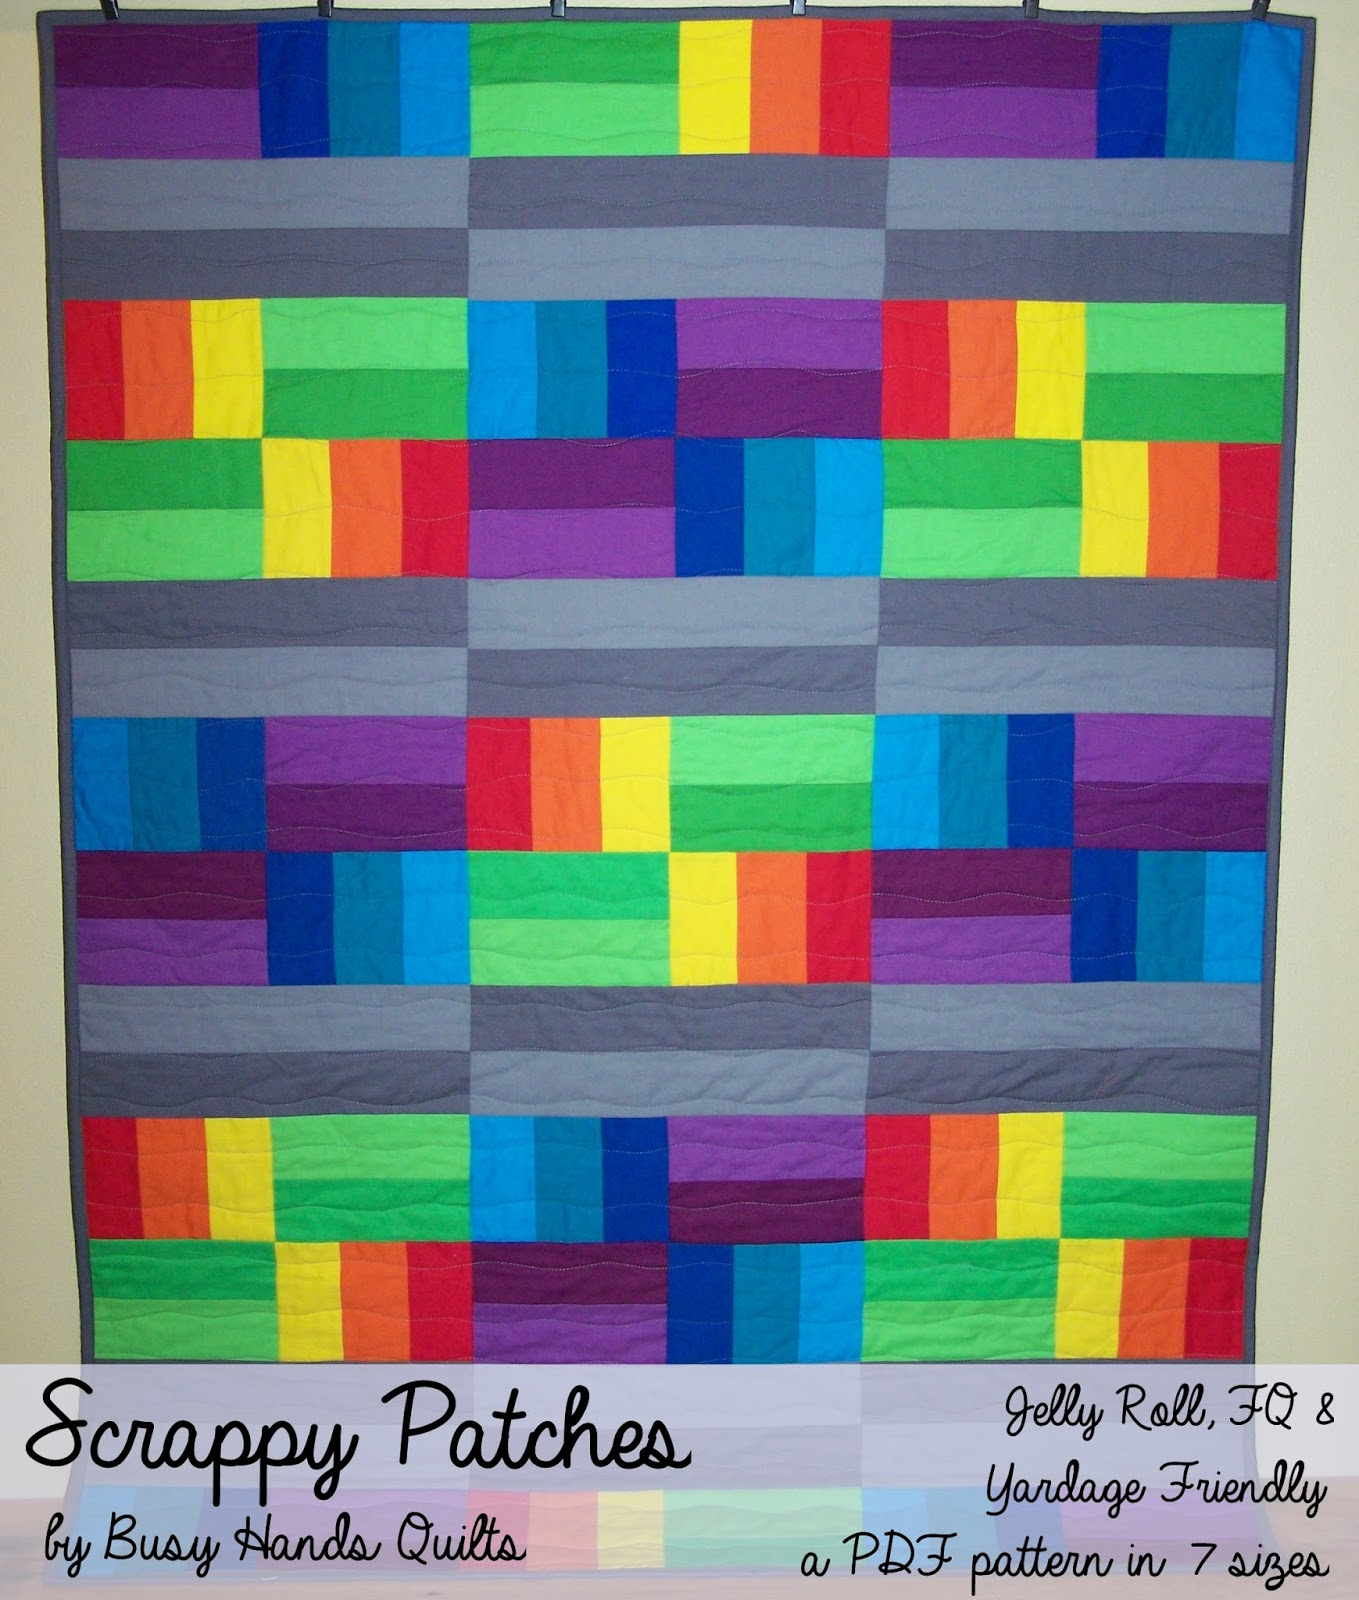 Scrappy Patches